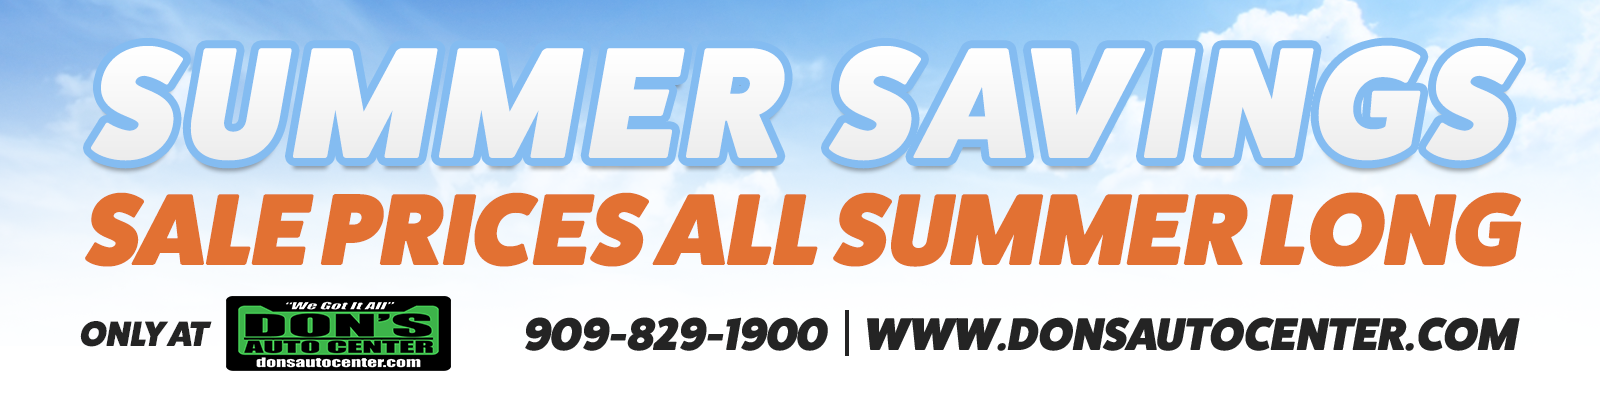 Summer savings! Sale Prices All Summer Long at Don's Auto Center